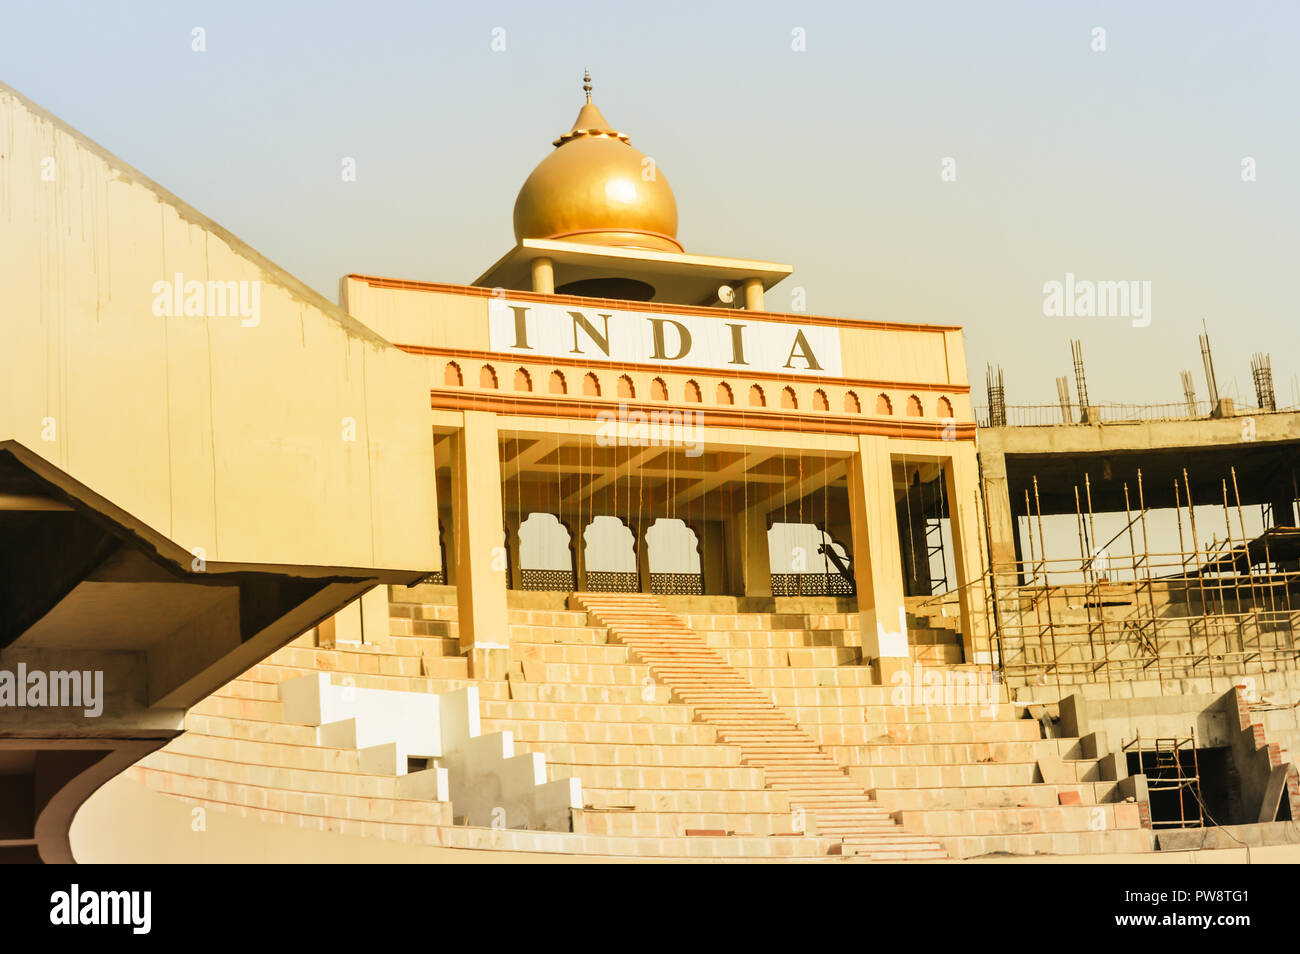 india pakistan border gate stock photos india pakistan border gate stock images alamy. Black Bedroom Furniture Sets. Home Design Ideas